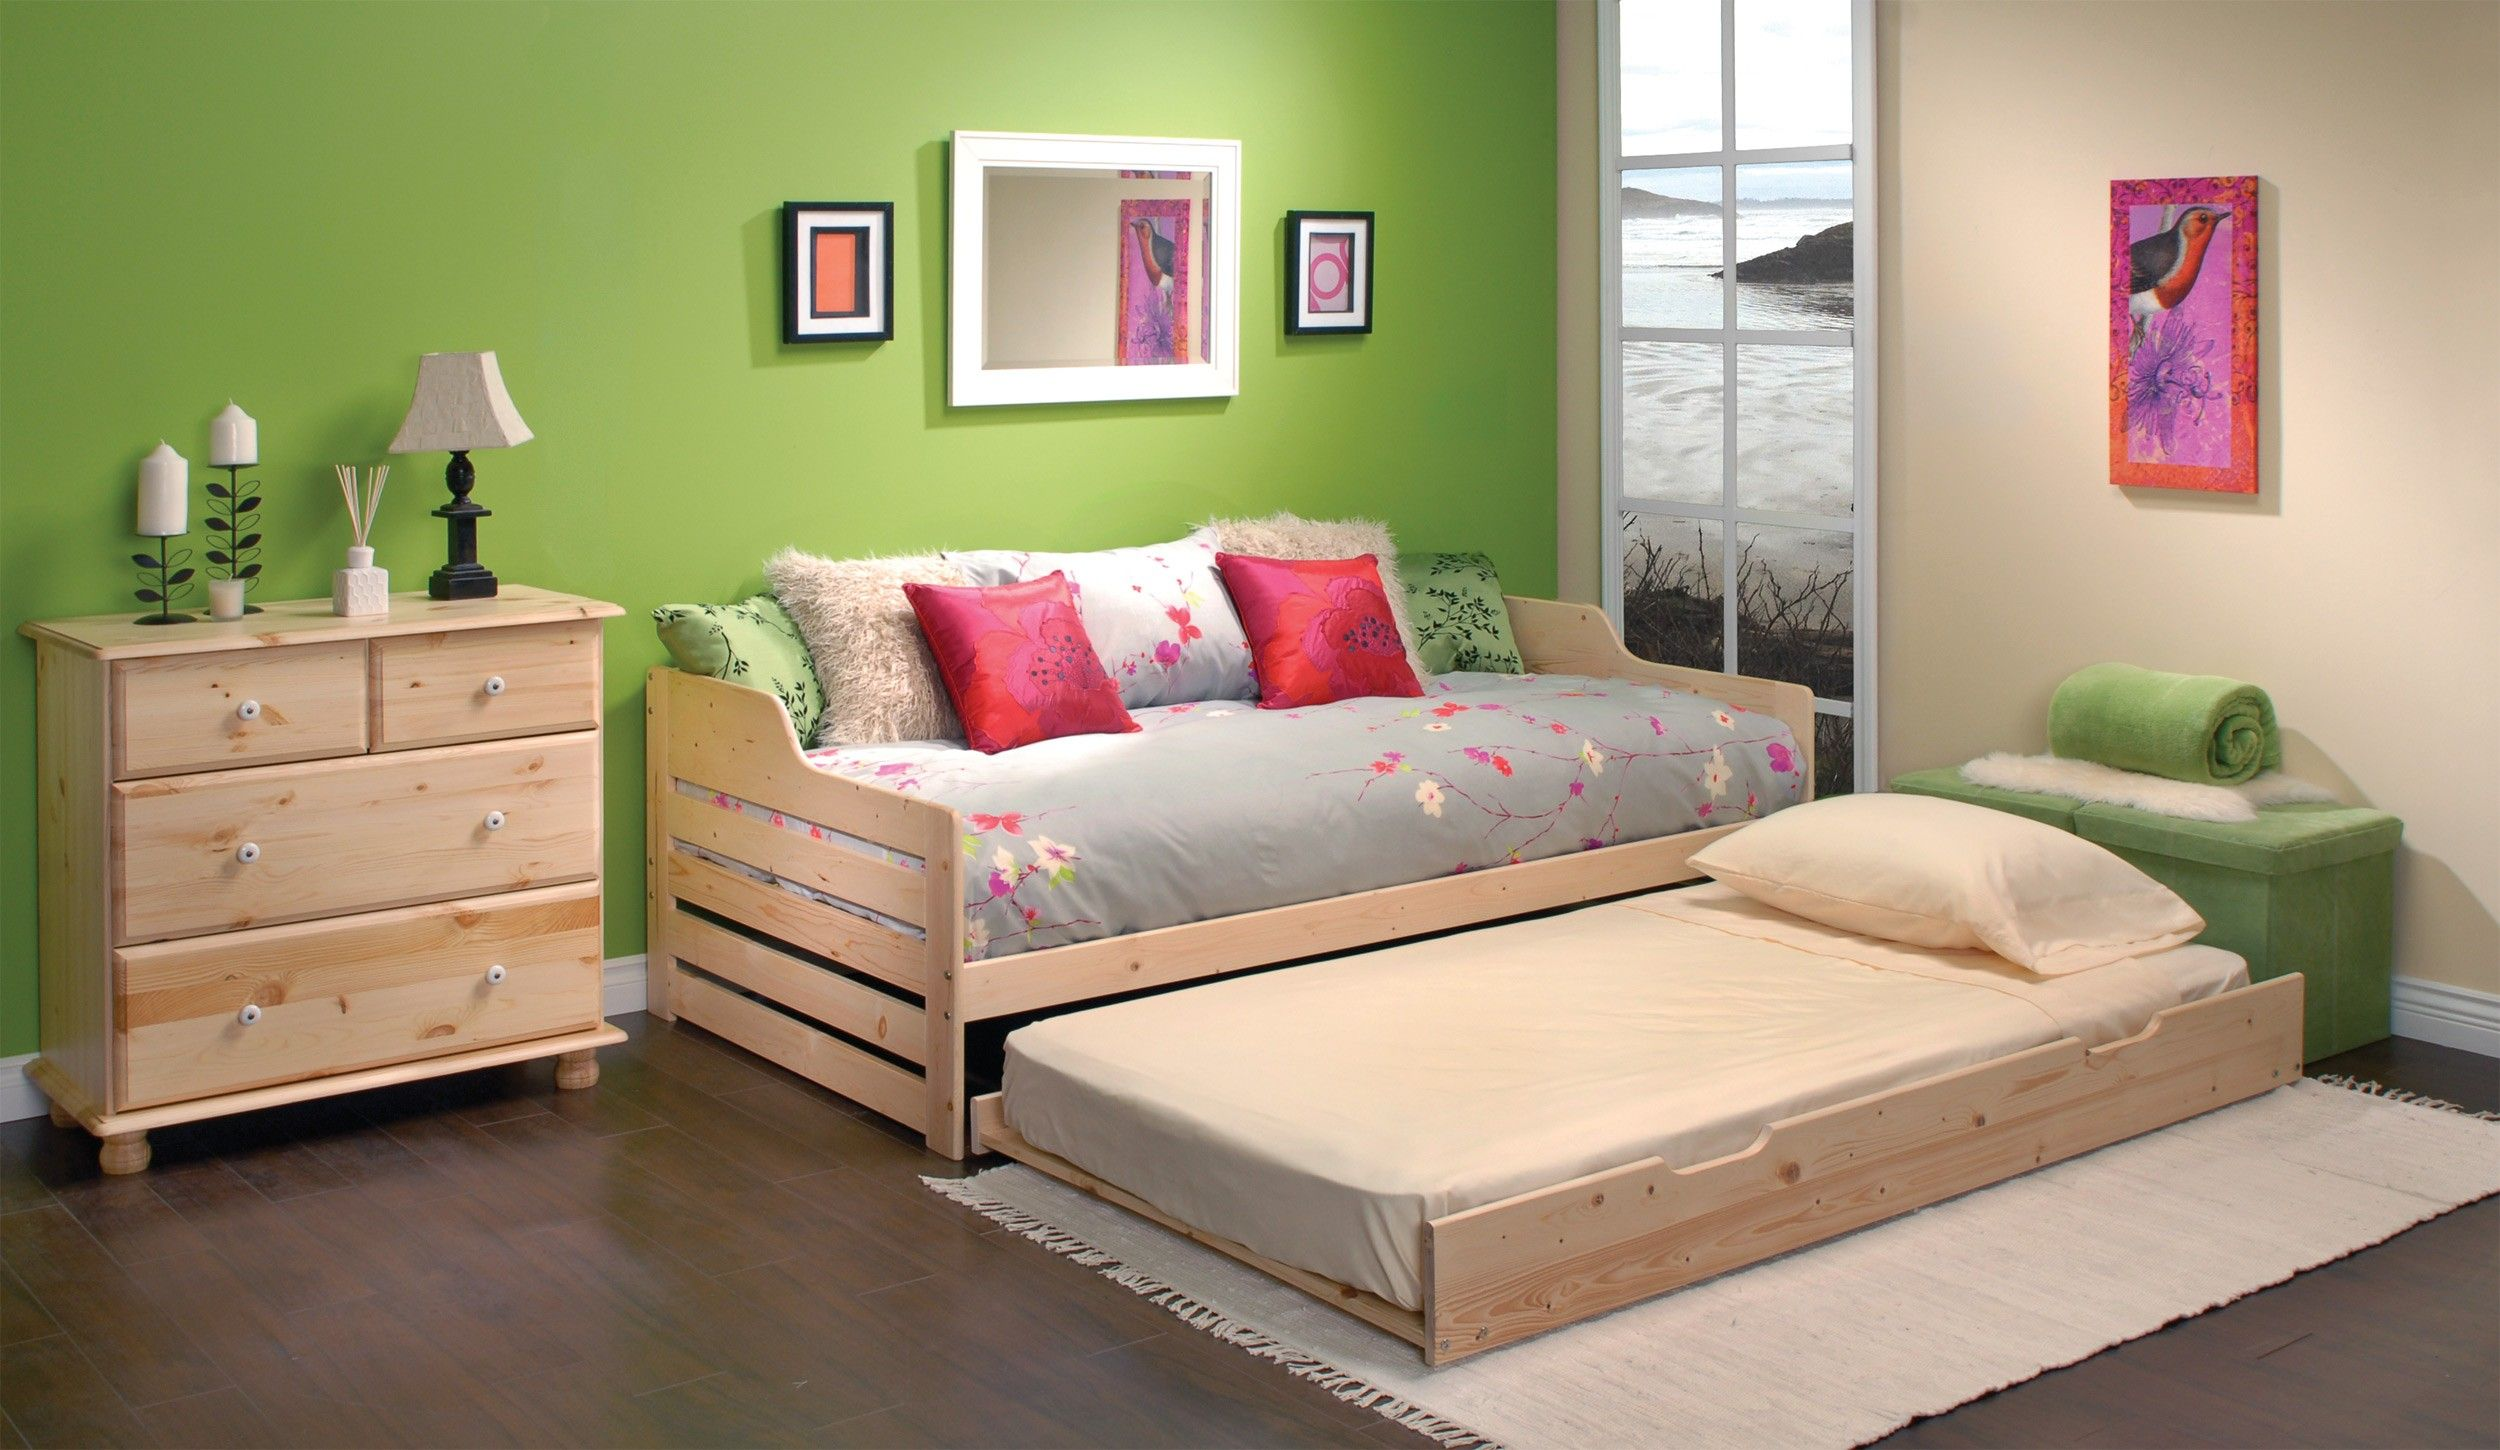 Cambridge Daybed Frame Jysk Canada Daybed Bedroom